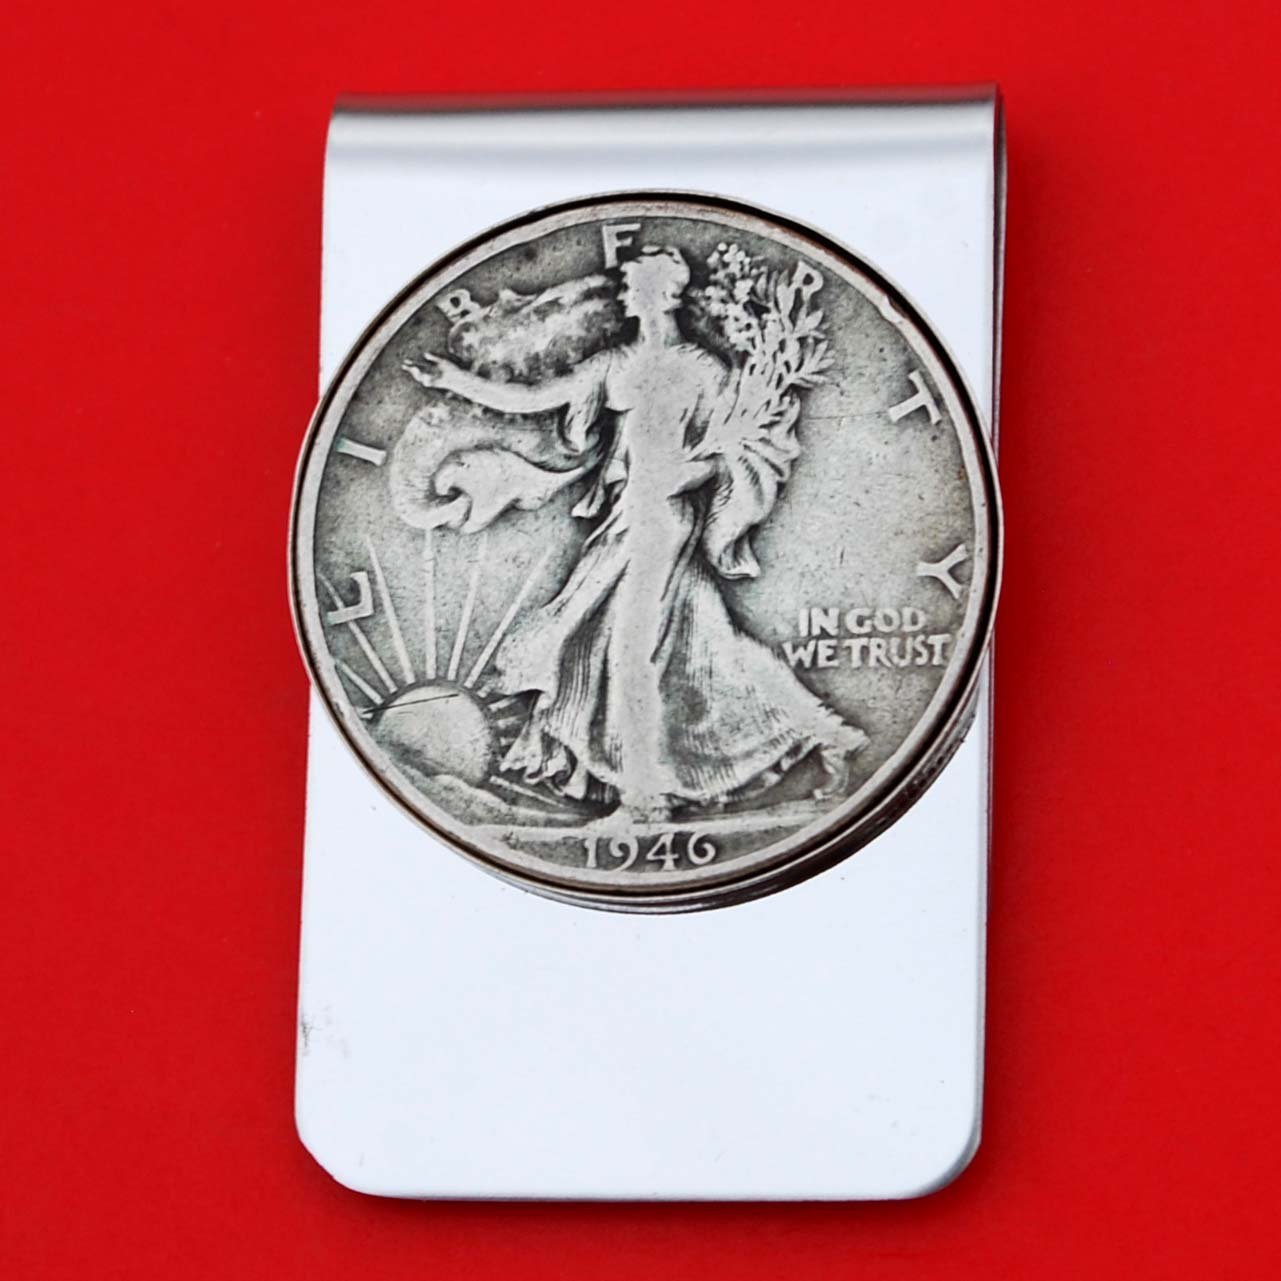 US 1946 Walking Liberty Half Dollar 90% Silver Coin Stainless Steel Money Clip NEW - Silver Plated Coin Bezel